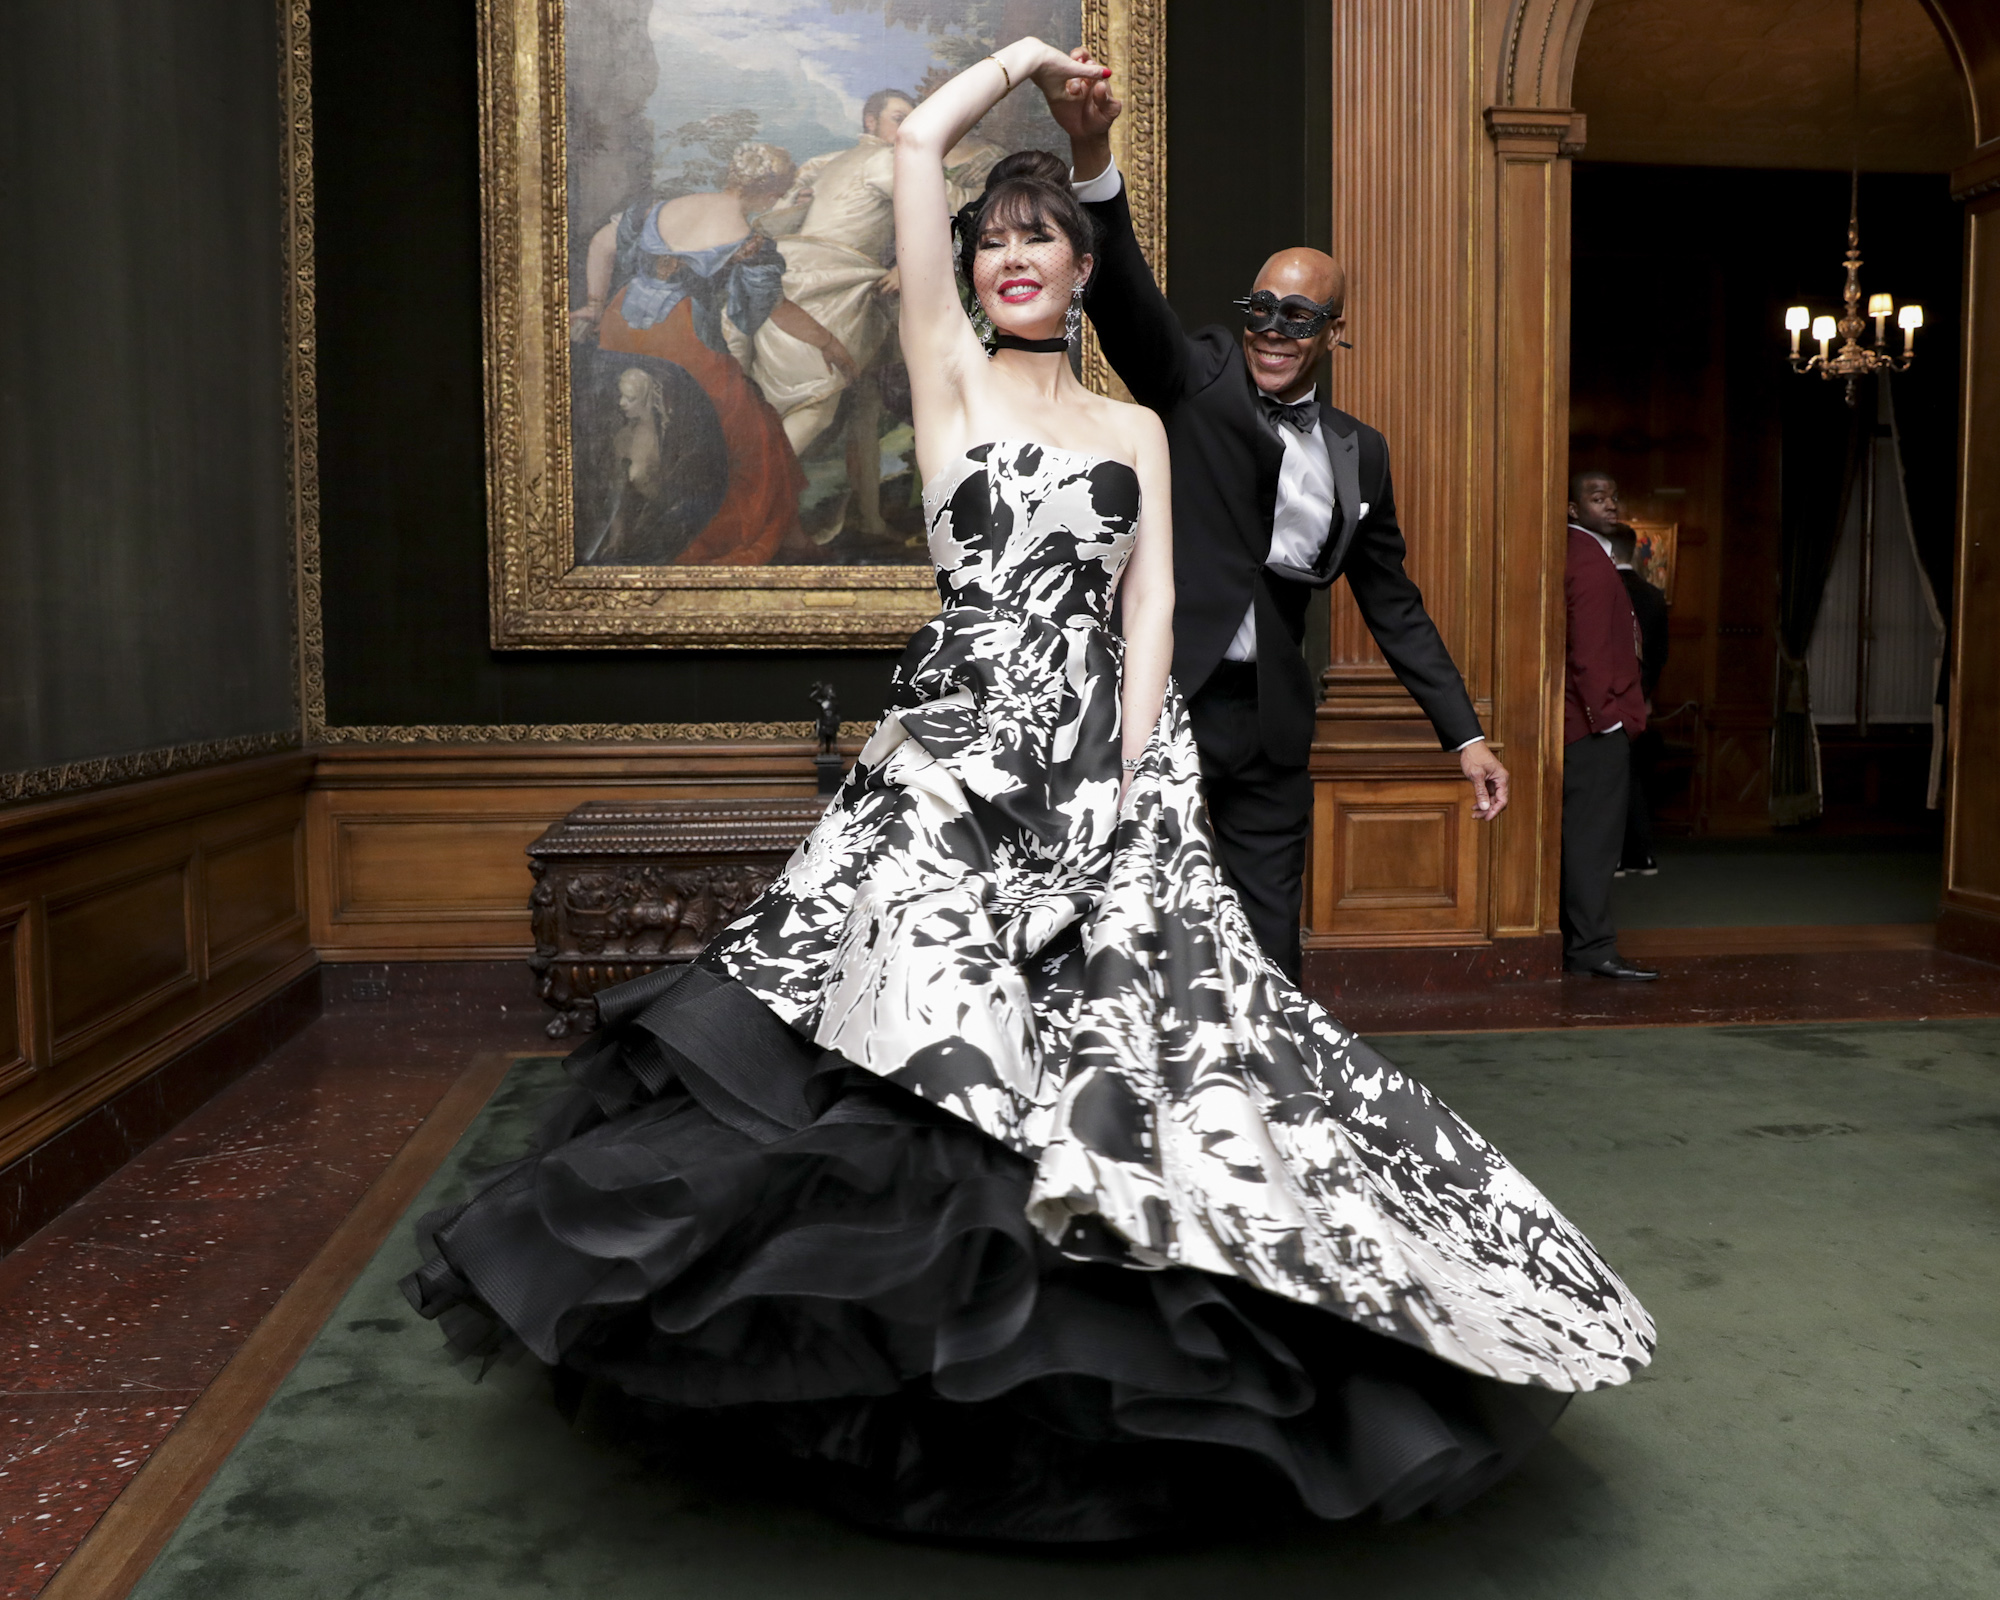 Rebecca Vanyo and Desmond Cadogan attend The Frick Collection's 20th Annual Young Fellows Ball at 1 East 70th Street on Thursday, March 21st, 2019. Photography, Courtesy of The Frick Collection.